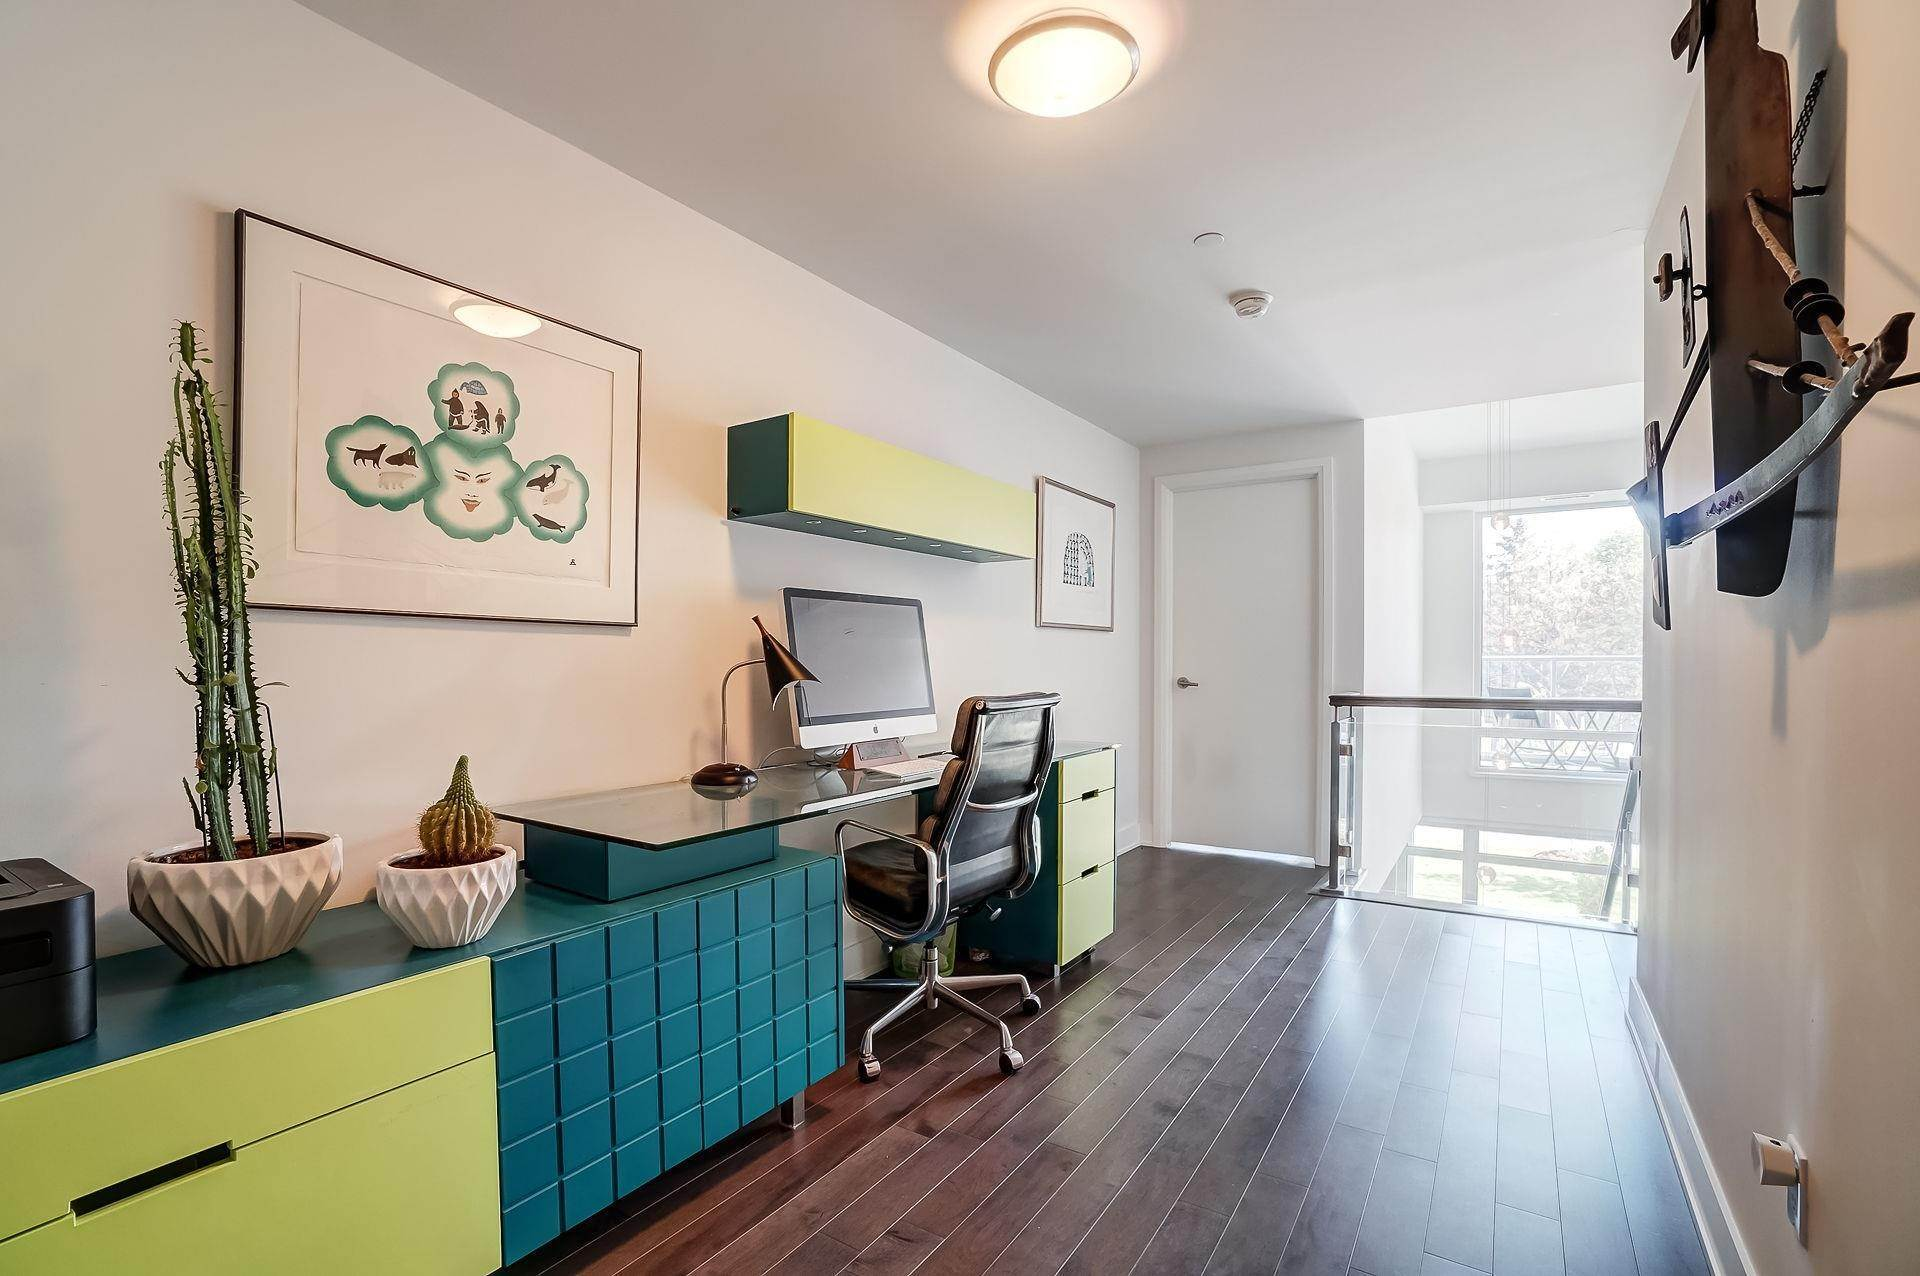 15. Townhome / Condominium for Sale at 2-Storey Townhome 1035 Bank Street Ottawa, Ontario,K1S 5K3 Canada